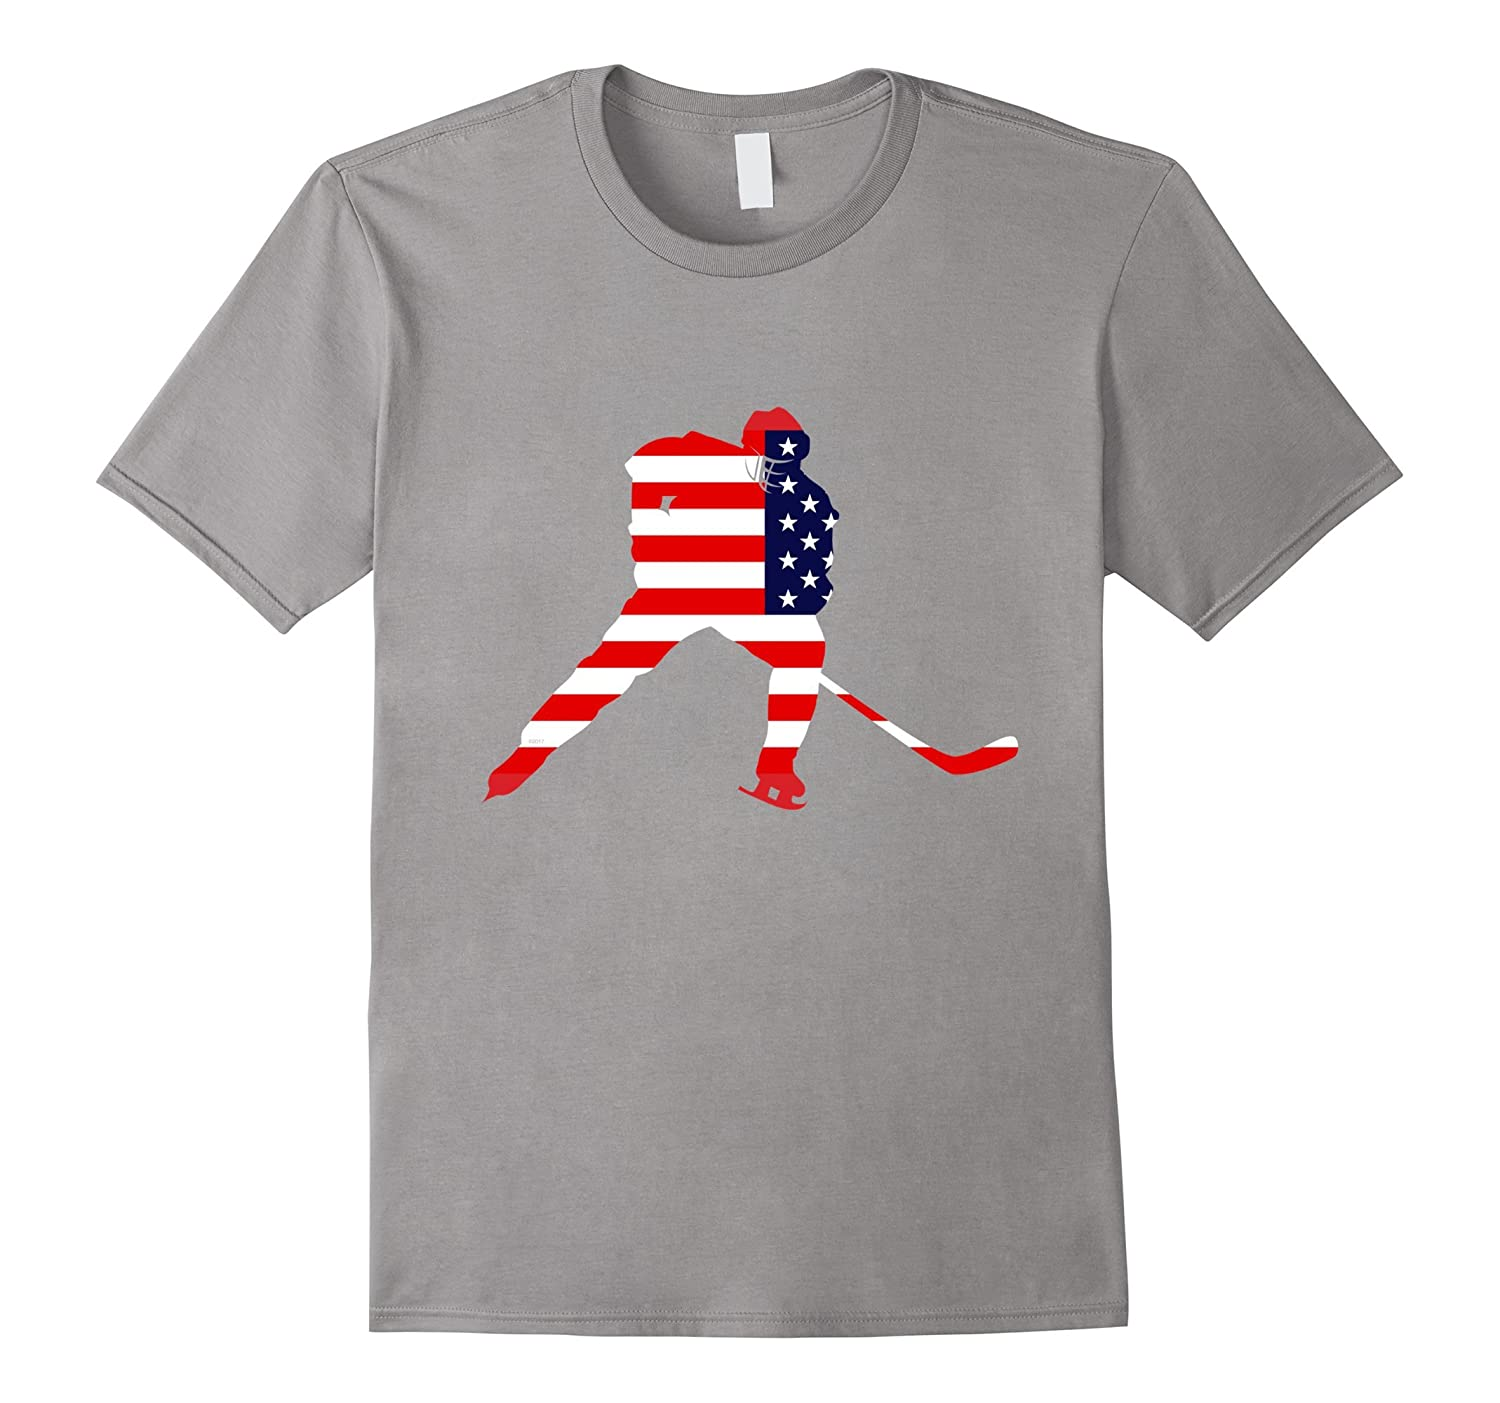 USA Ice Hockey T Shirt Player Love American Team Stick Puck-Vaci